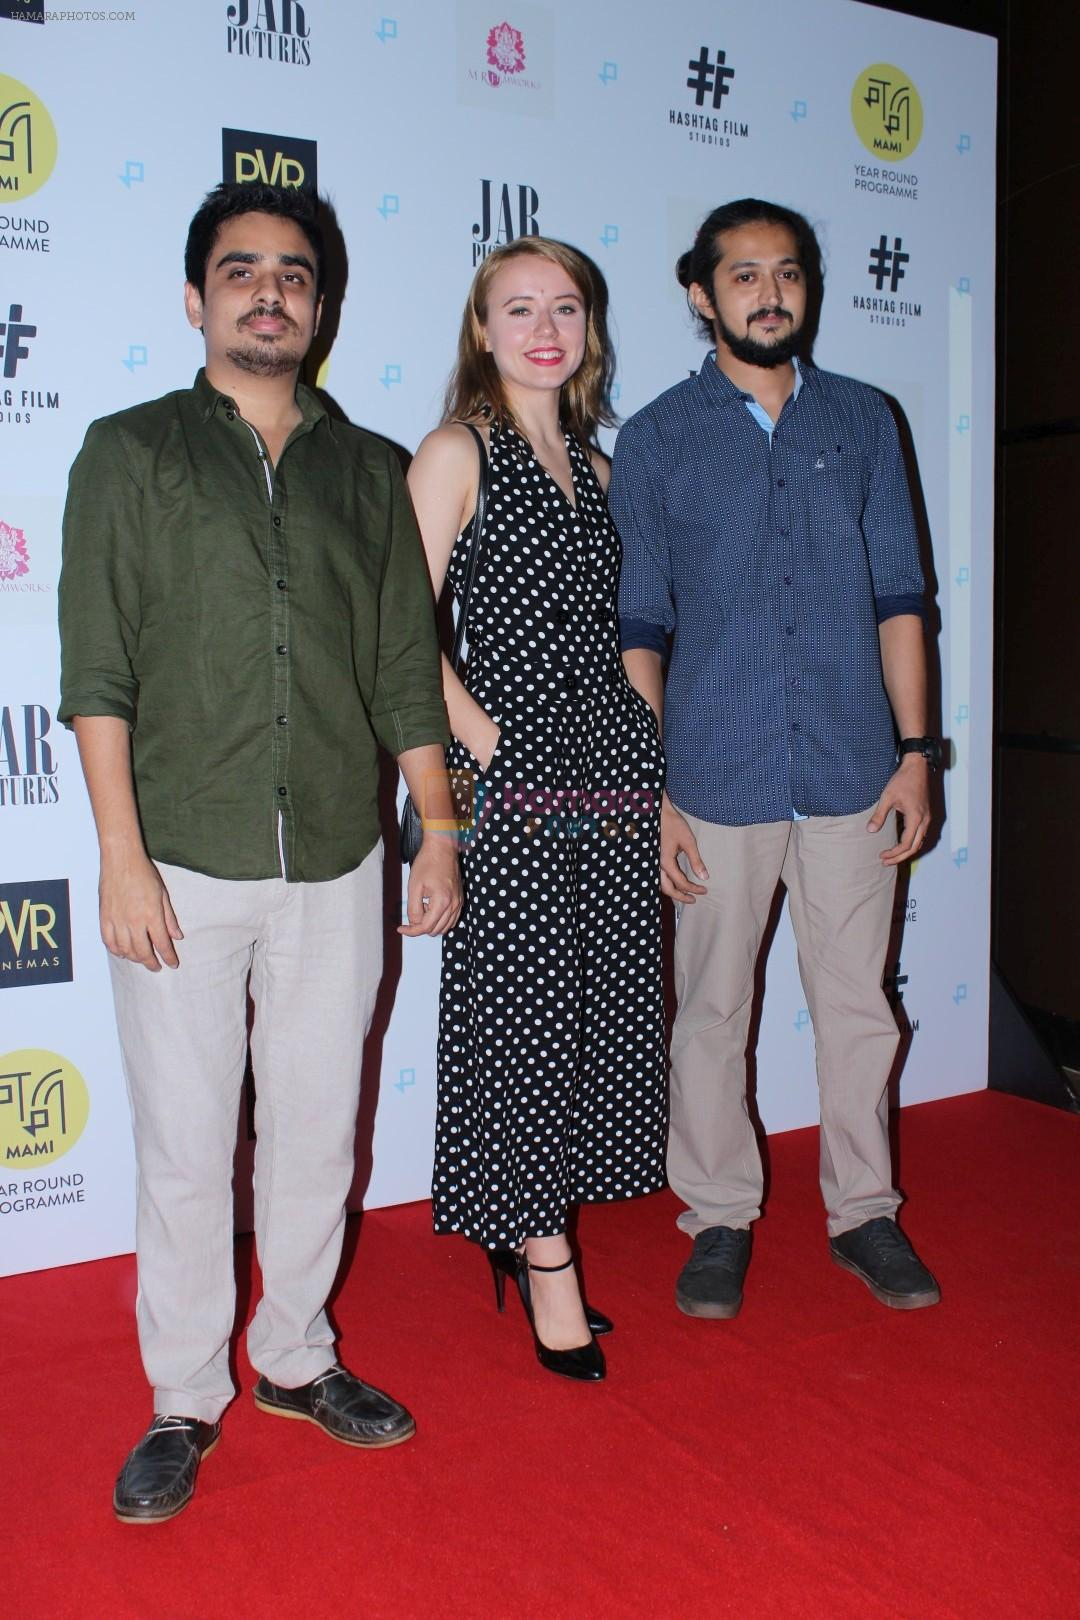 Anna Ador at Gurgaon Film Premiere Hosted By MAMI Film Club on 1st Aug 2017